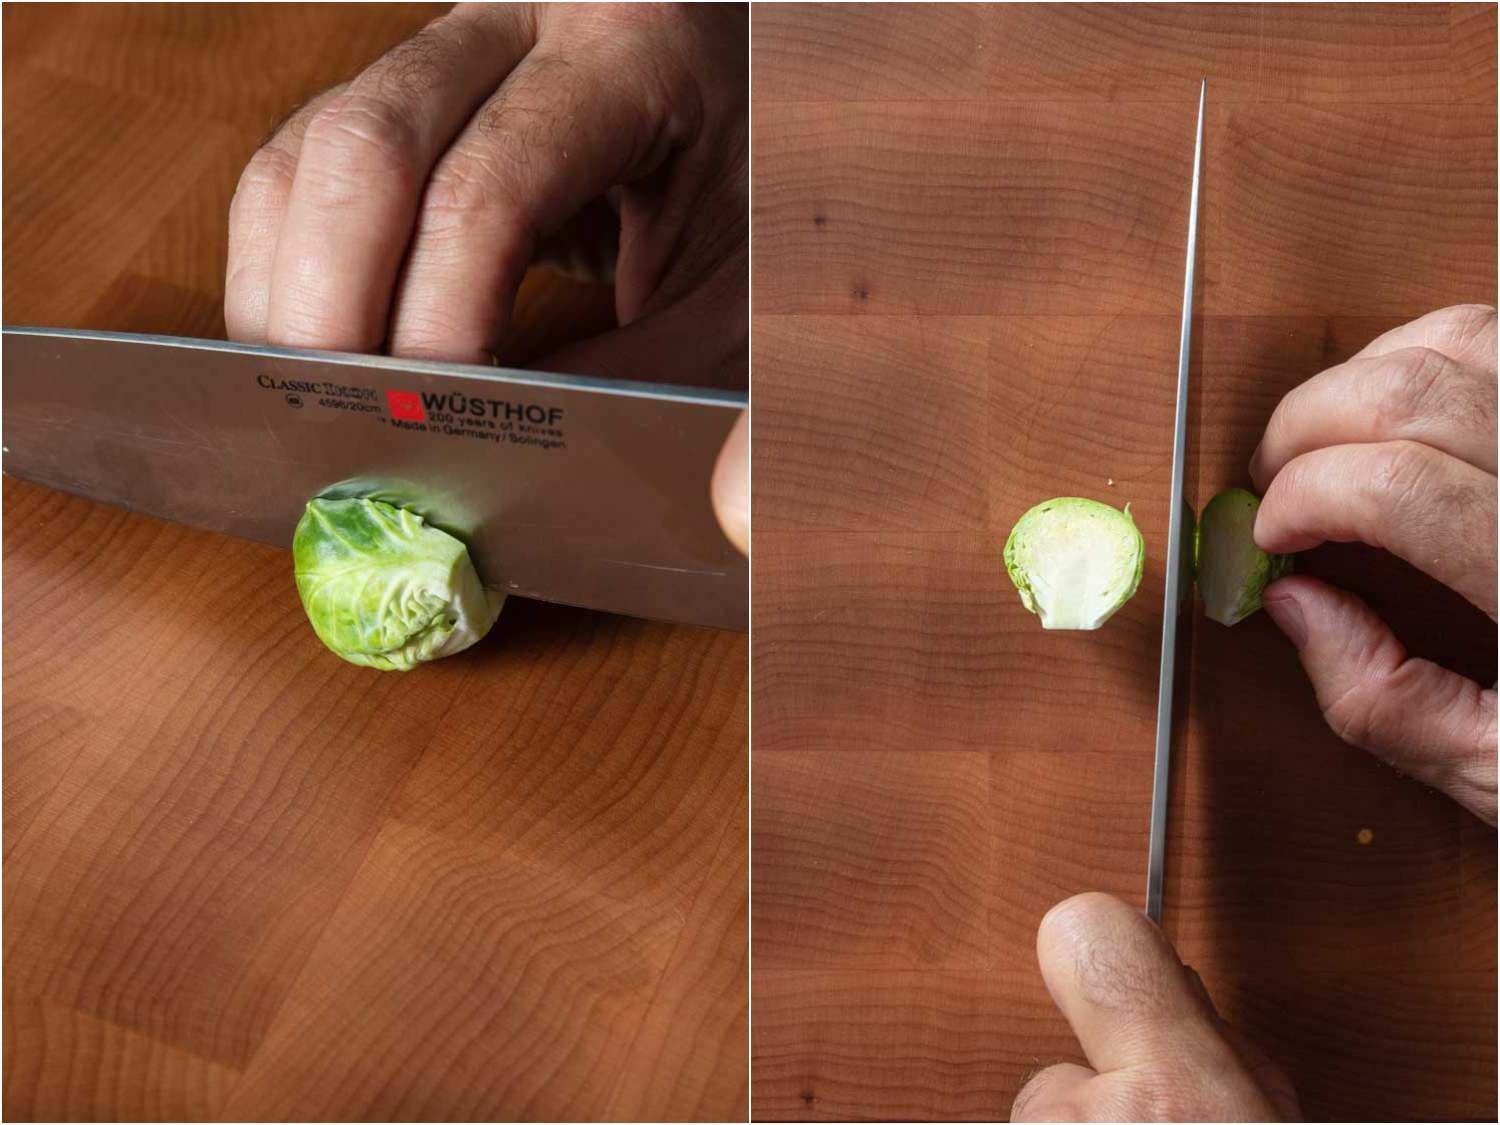 A two-photo collage showing a Brussels sprout being cut in half lengthwise through the core.